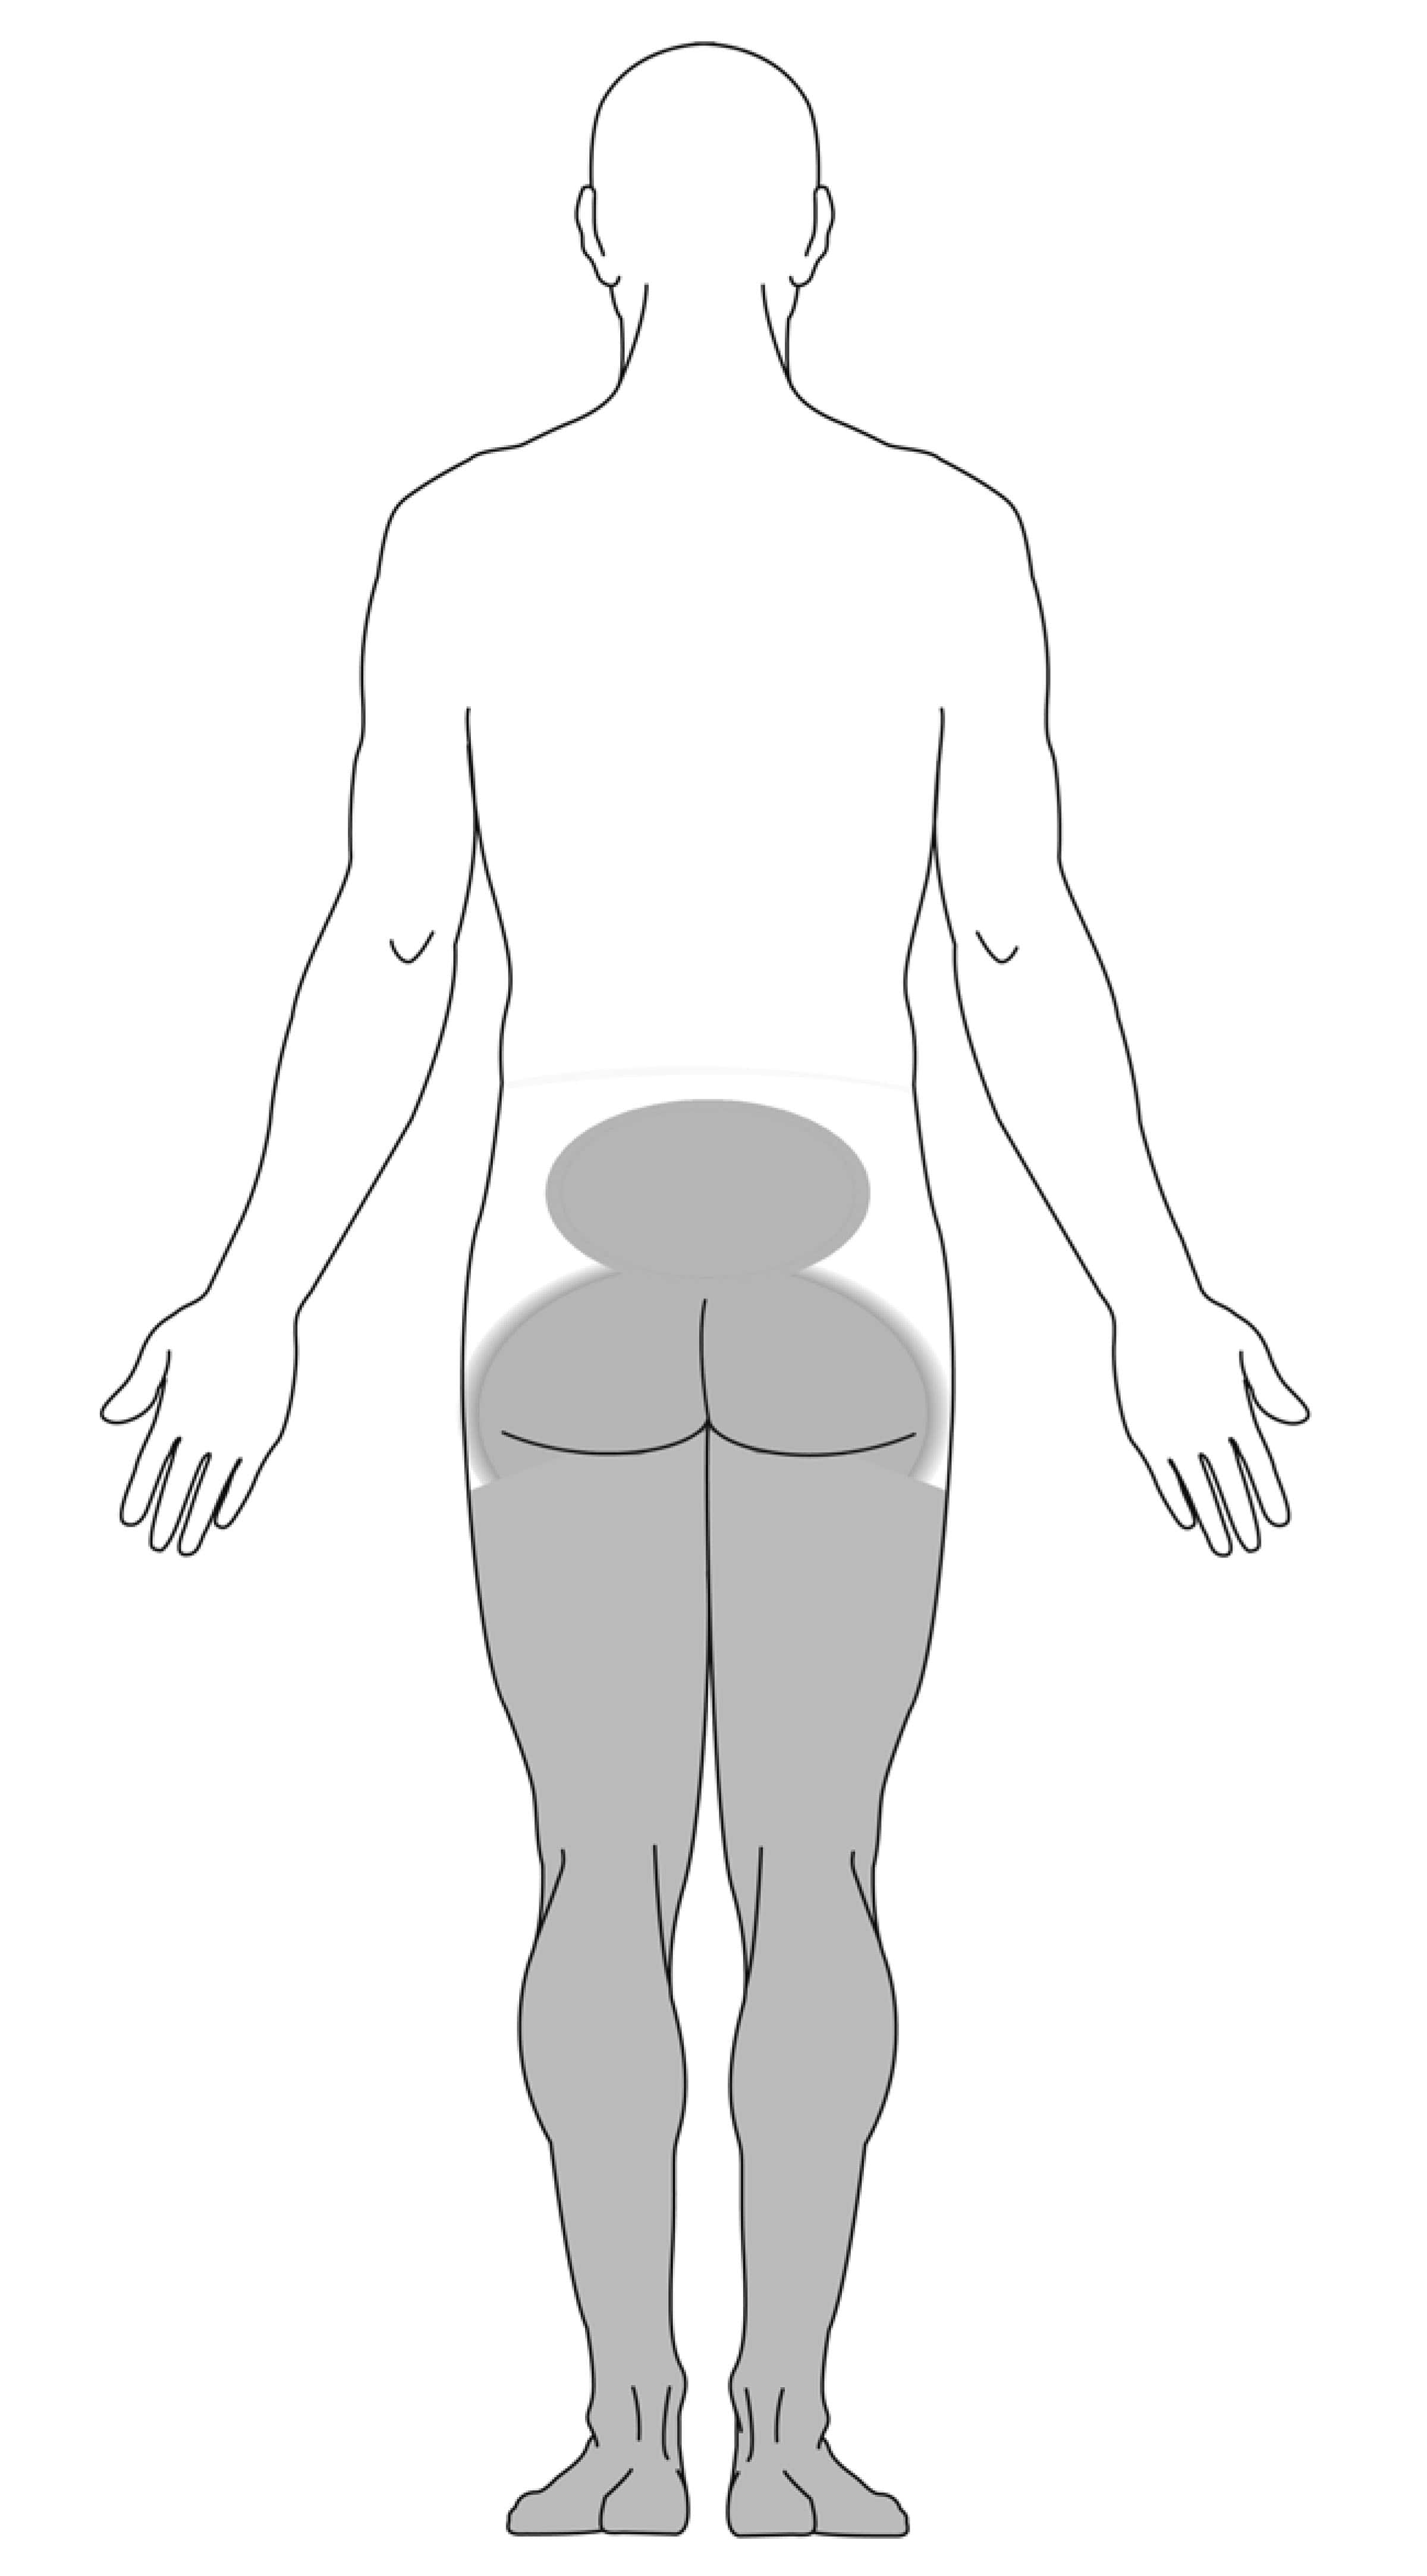 pain diagram for cauda equina syndrome